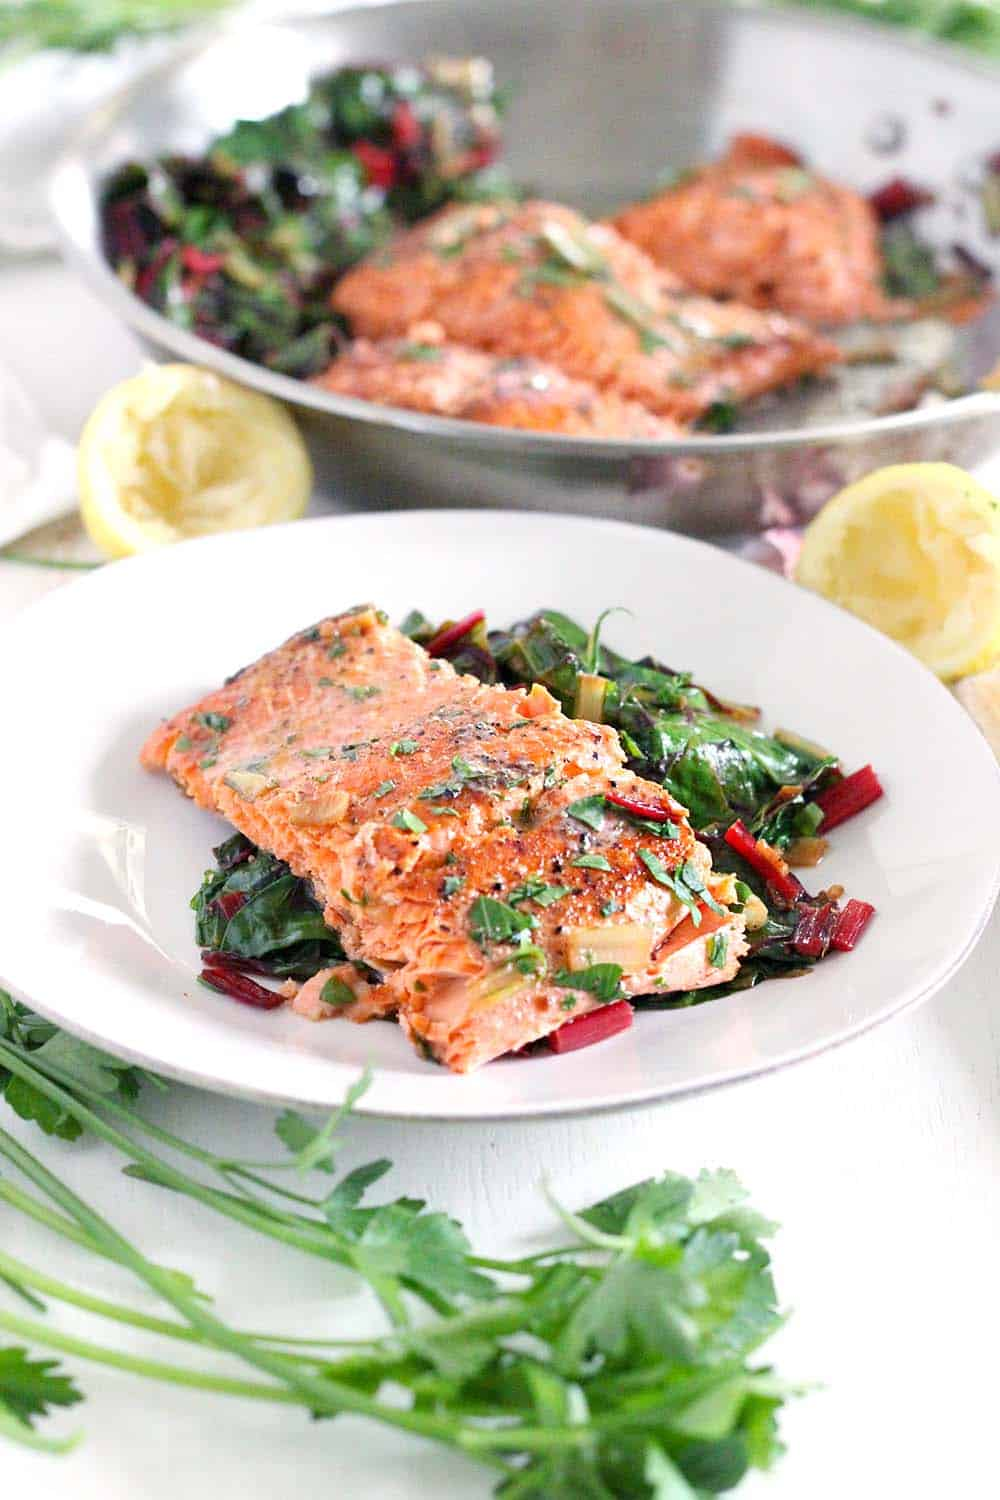 One Pan Garlic Butter Salmon and Swiss Chard- This healthy, gluten-free, low-carb recipe comes together in only 20 minutes! Can easily be made paleo or whole30 compliant by using ghee instead of butter.